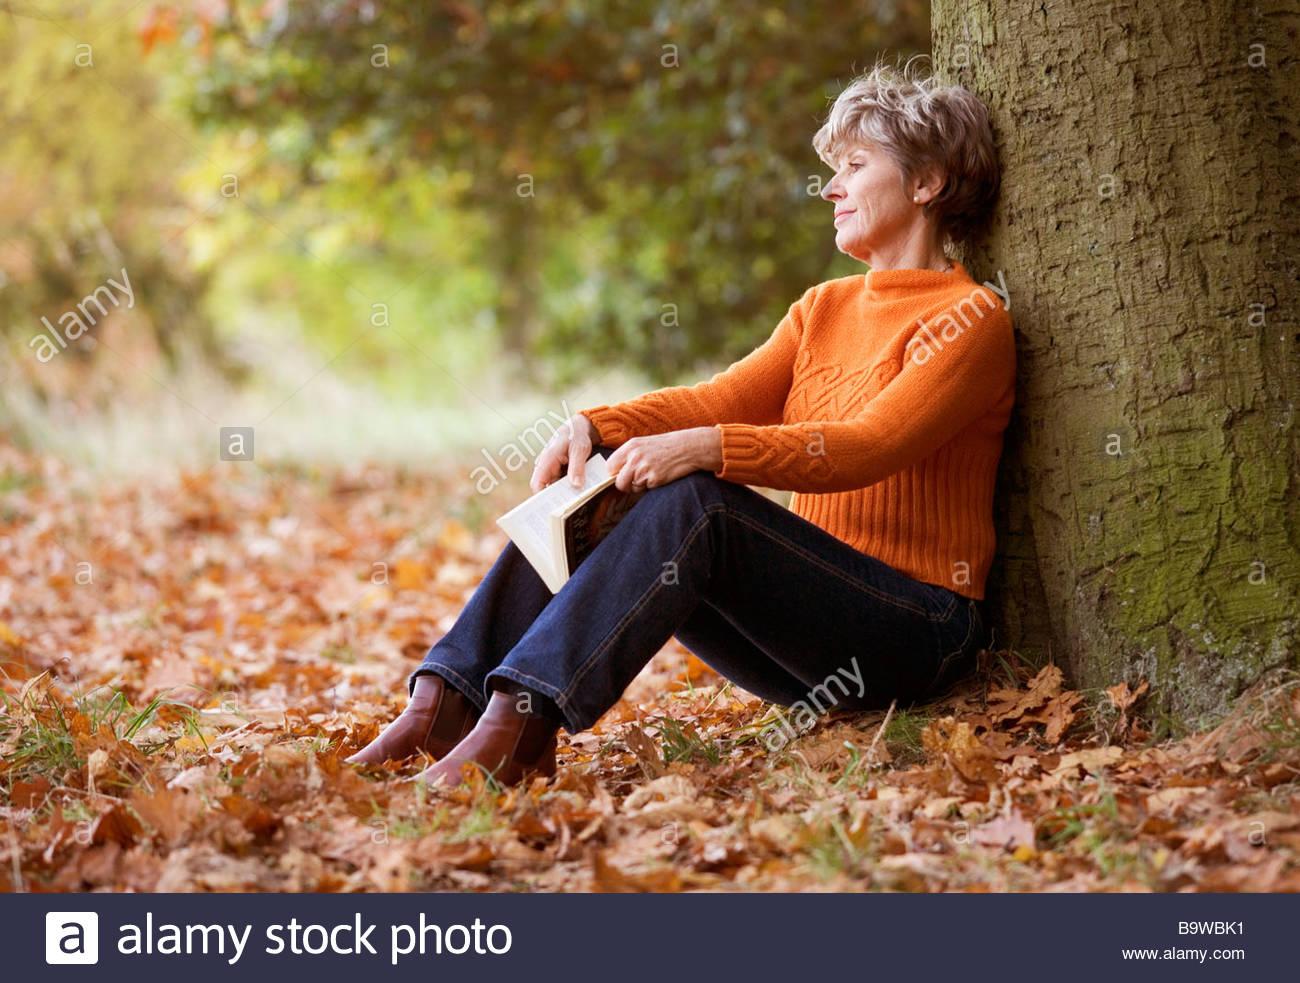 A senior woman sitting beneath a tree looking thoughtful - Stock Image